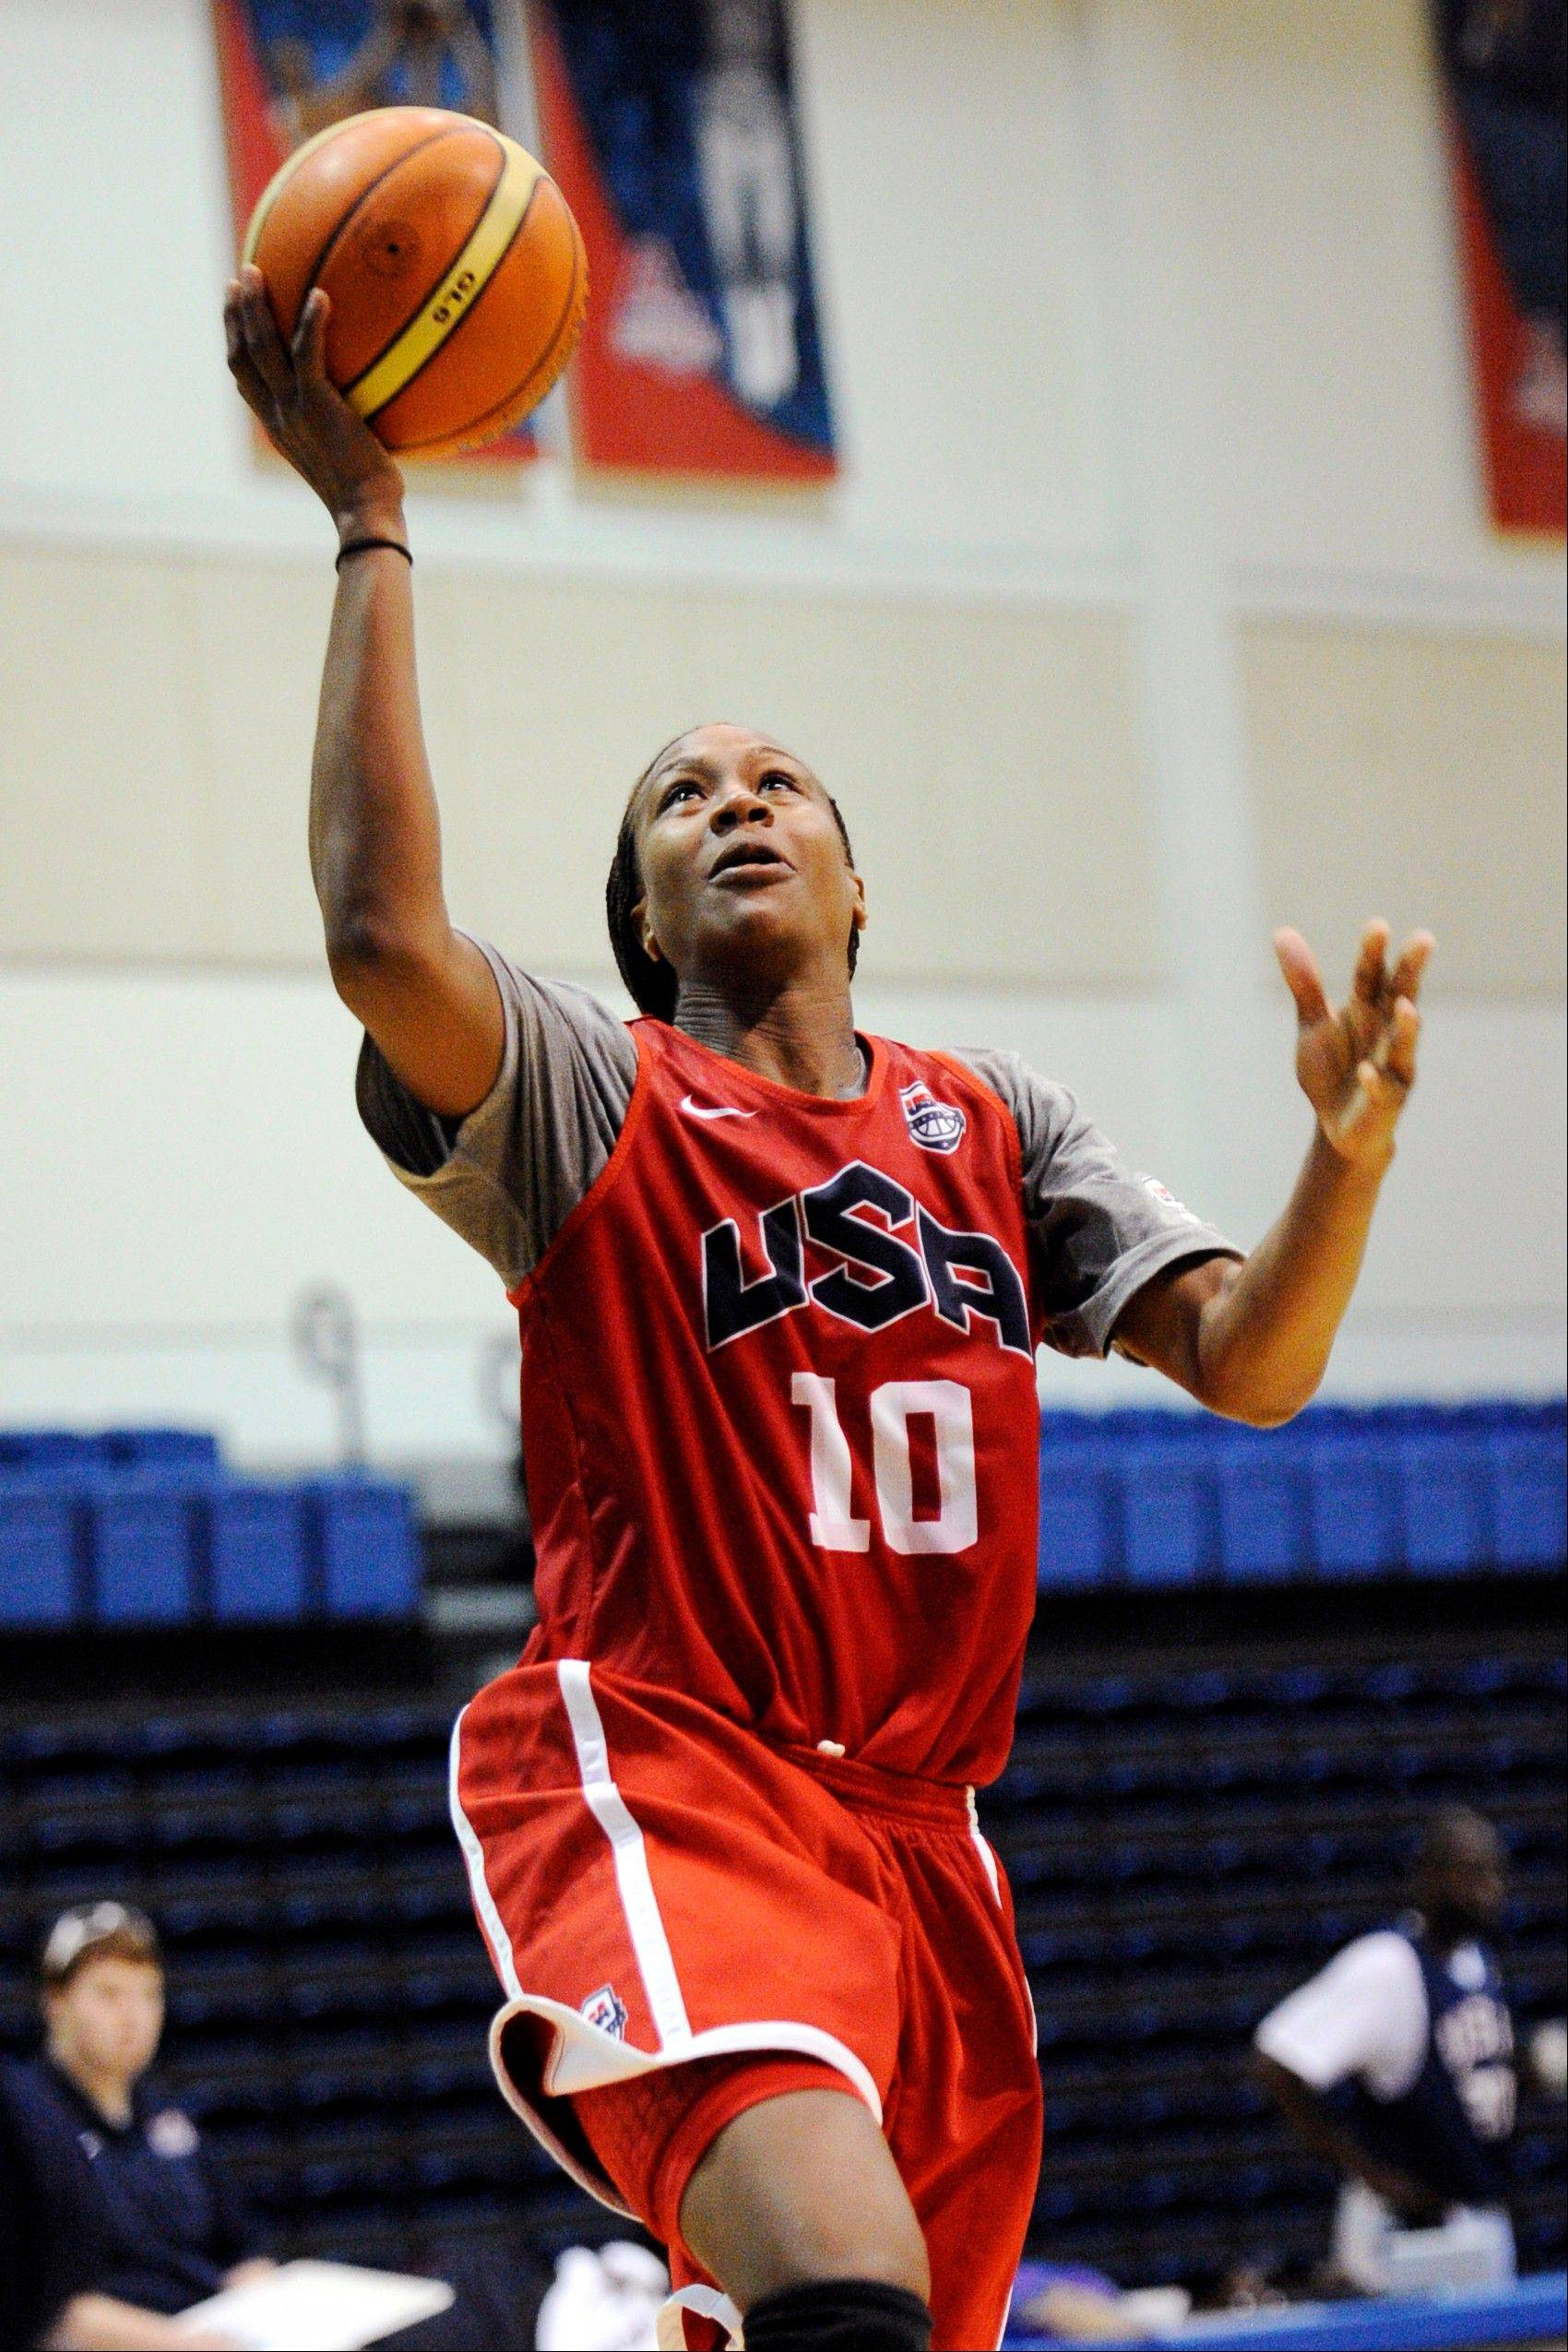 U.S. women's Olympic basketball player Tamika Catchings is hoping to win her third gold medal at age 33. The former Stevenson High School star helped capture the gold in 2004 and 2008 for Team USA.